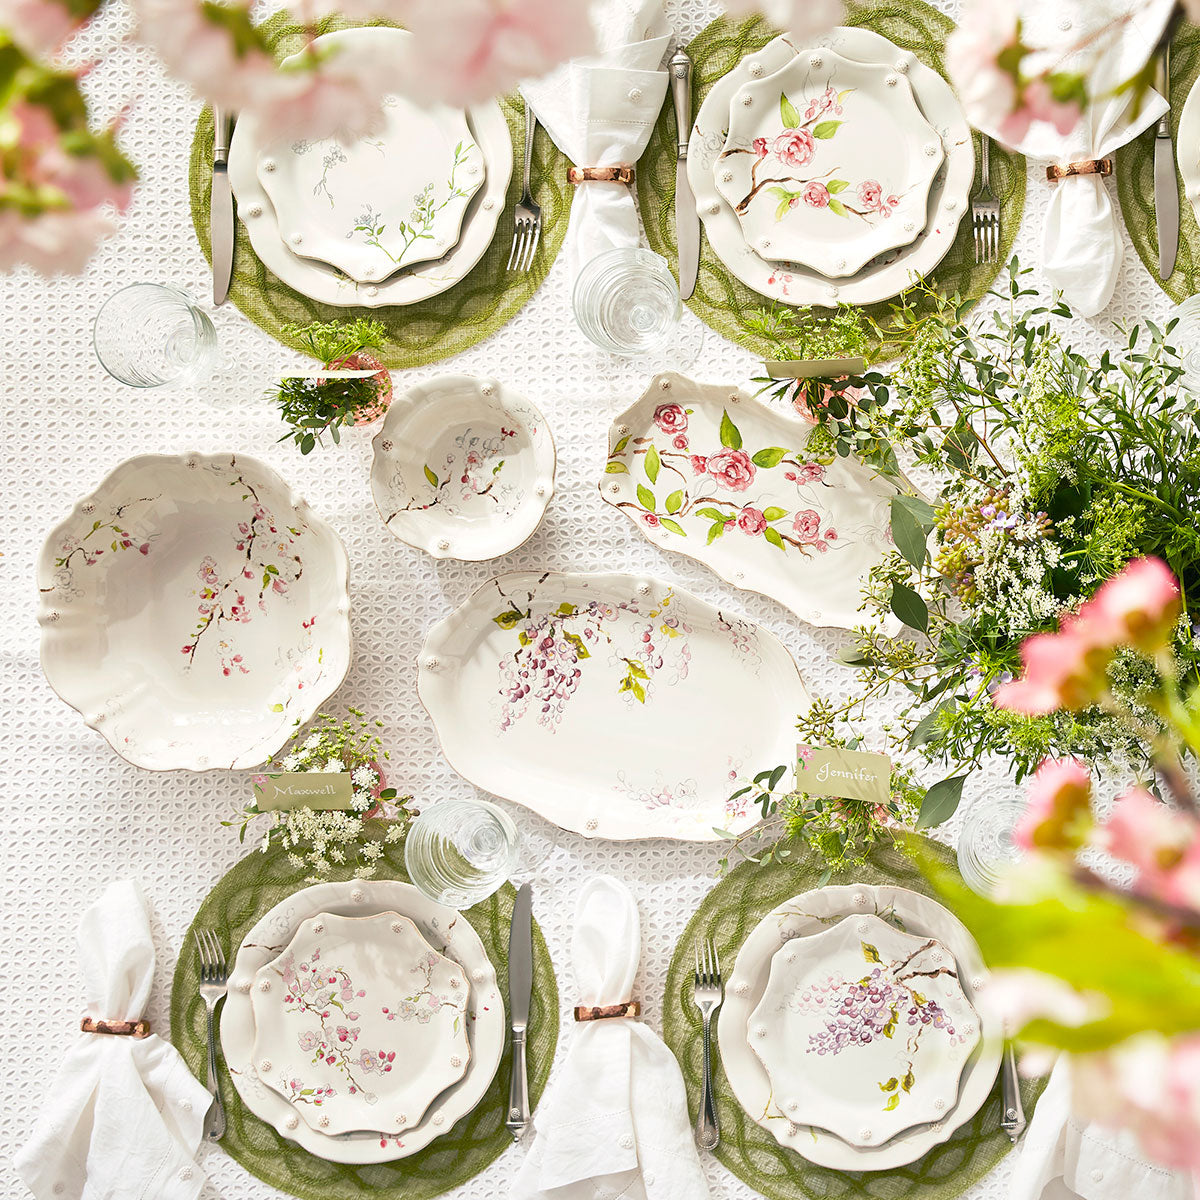 Berry & Thread Floral Sketch Salad/Dessert Plates, Assorted Set of 4